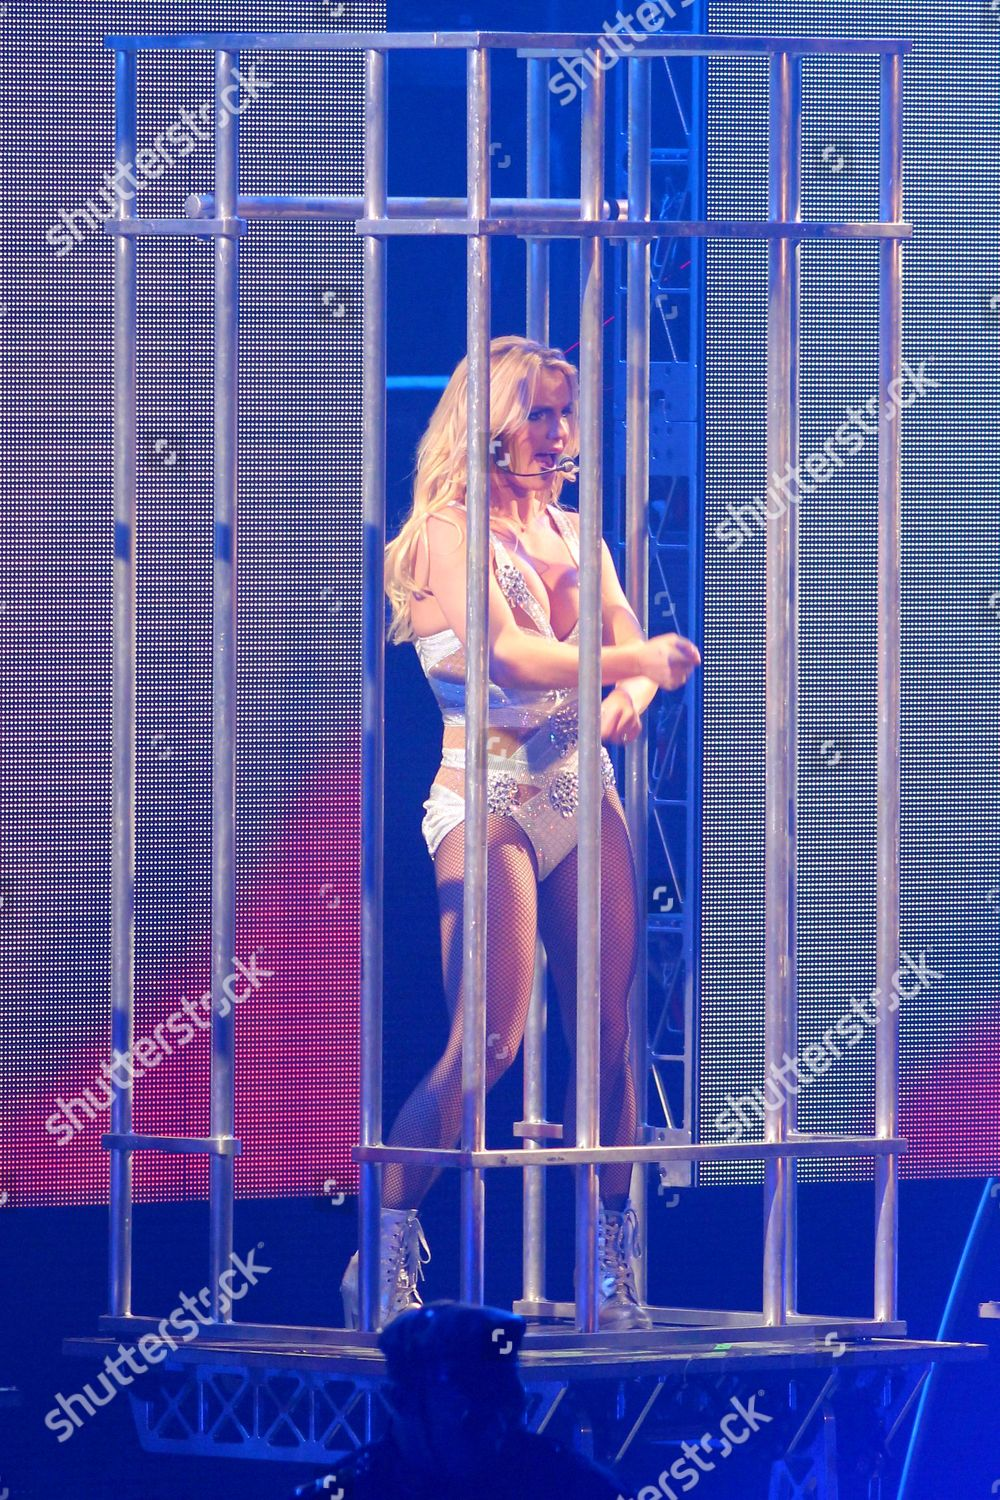 Britney Spears Editorial Stock Photo - Stock Image | Shutterstock